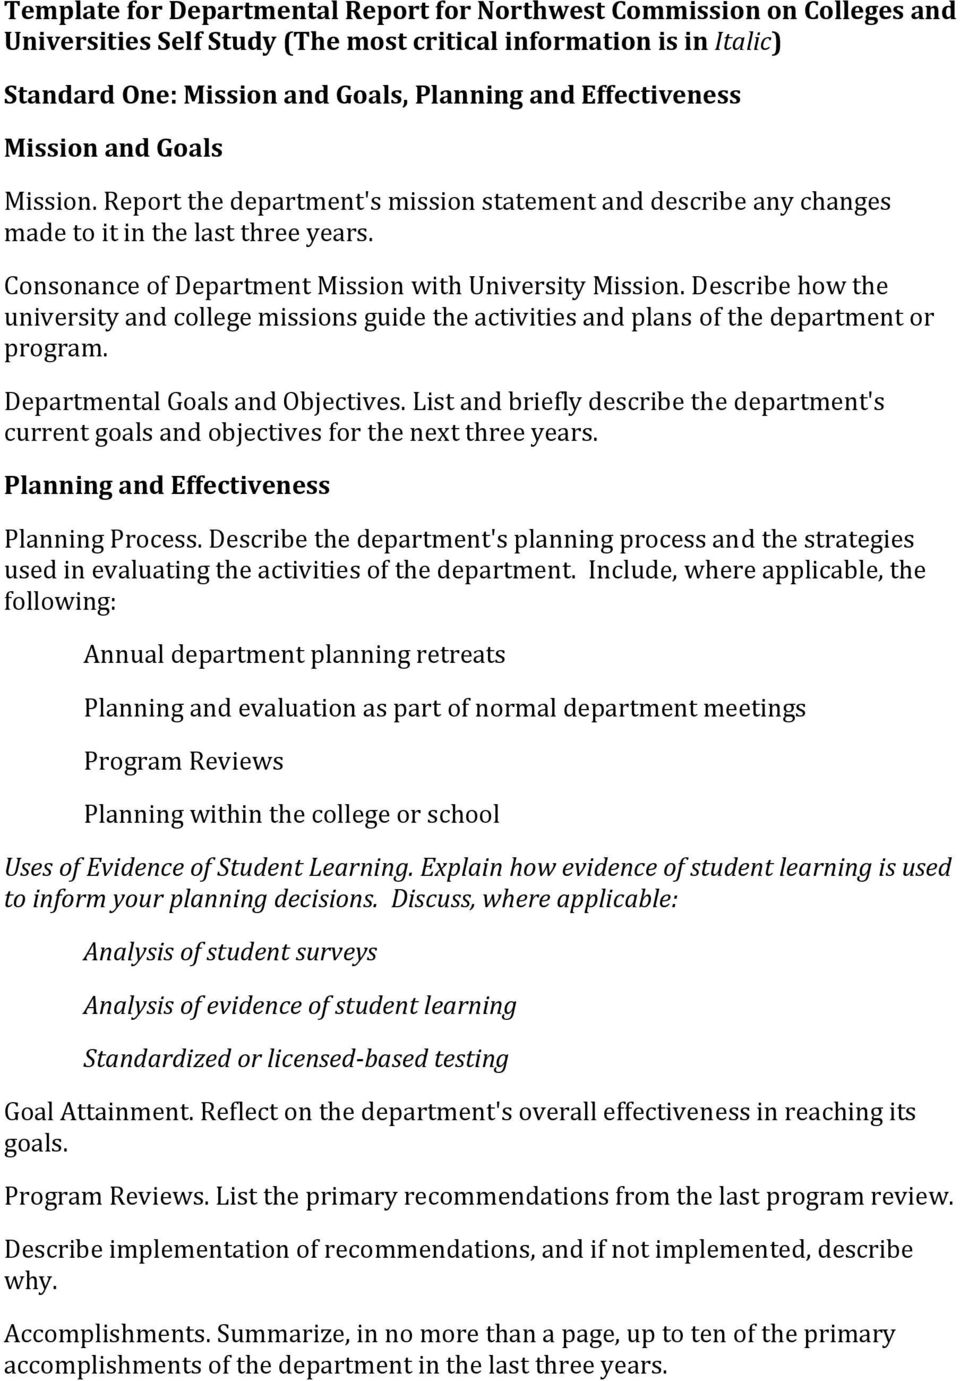 Consonance of Department Mission with University Mission. Describe how the university and college missions guide the activities and plans of the department or program.